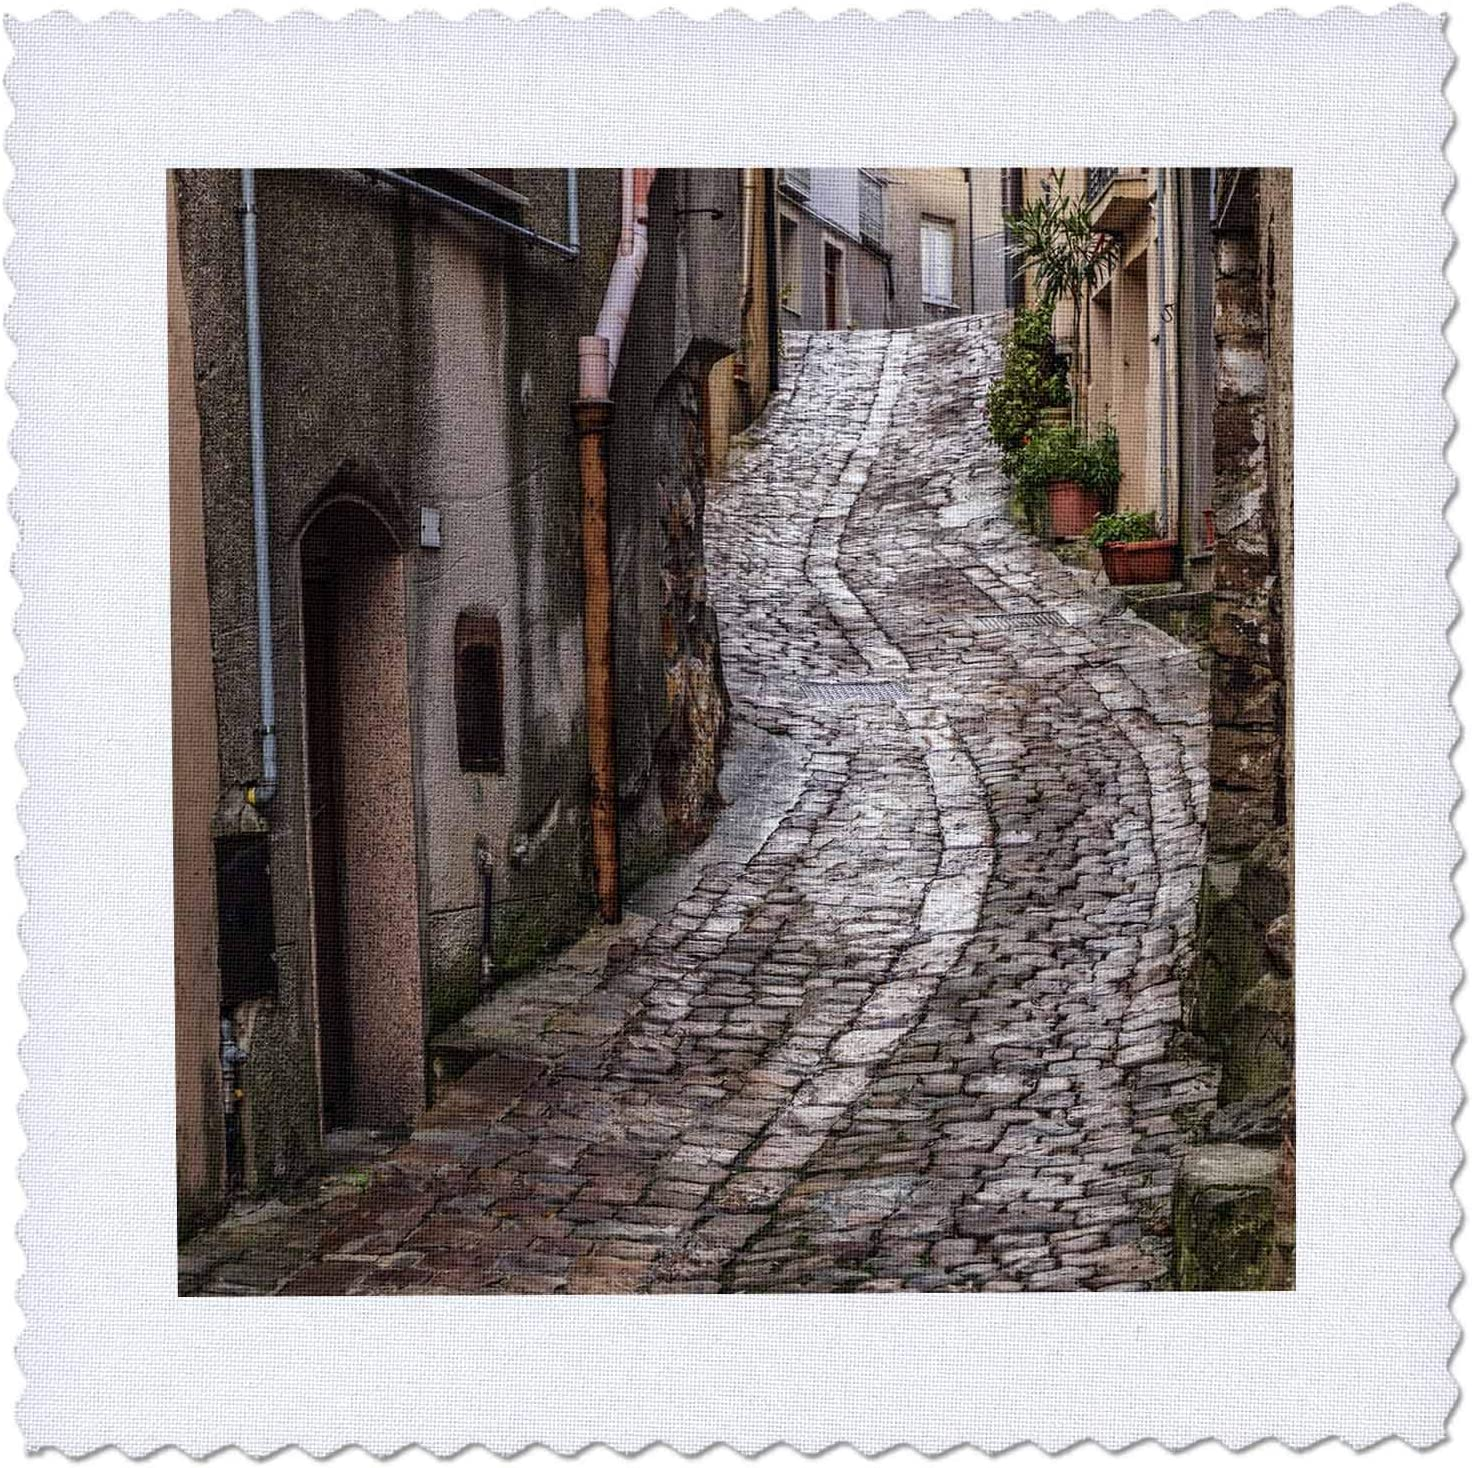 Popular products 3dRose Italy Sicily Palermo cobblestonein Province. shopping Winding Ge